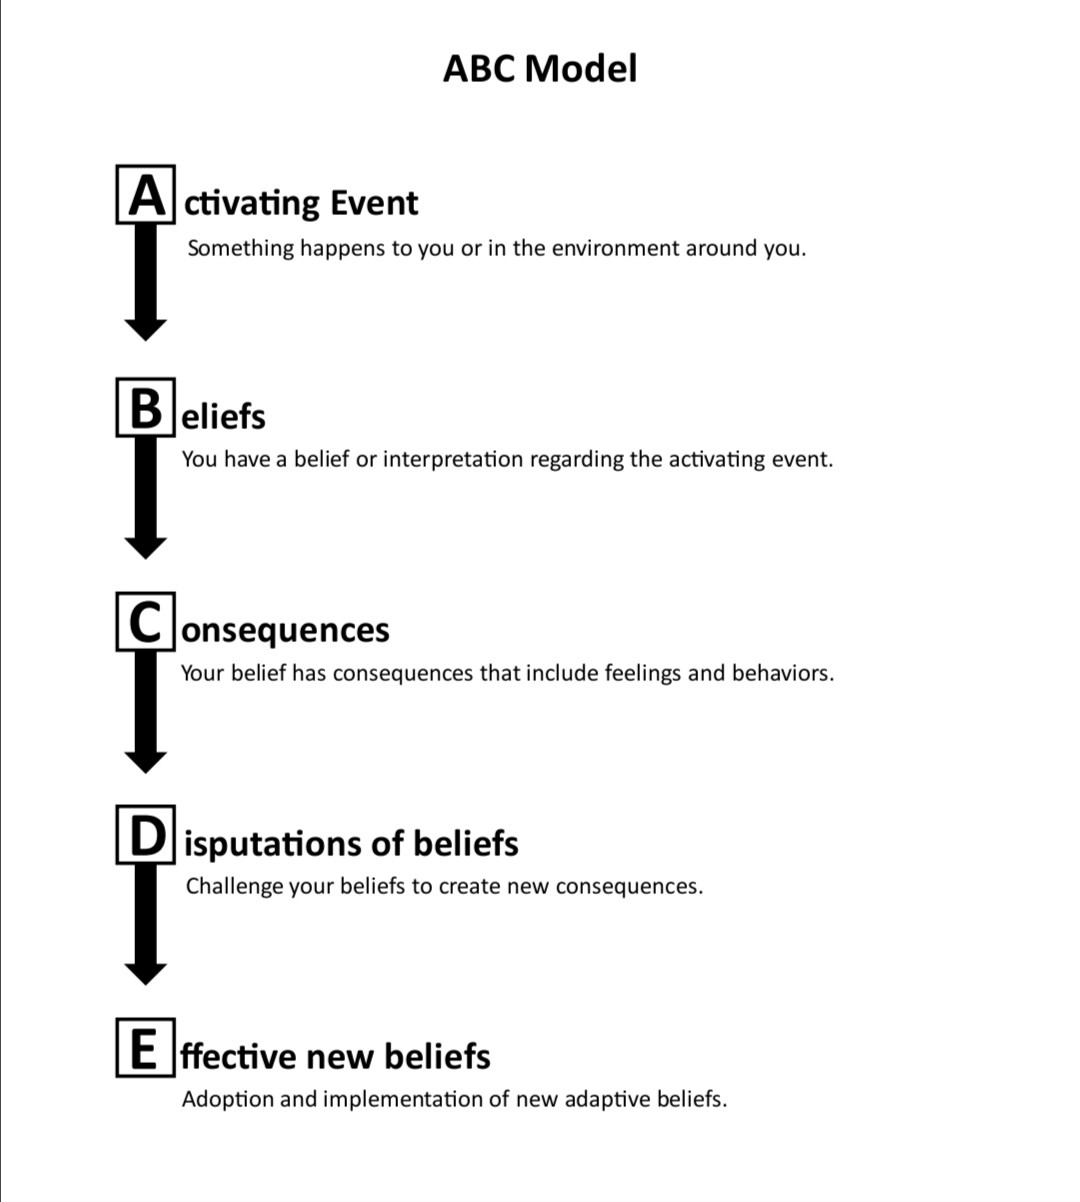 The ABC model of REBT